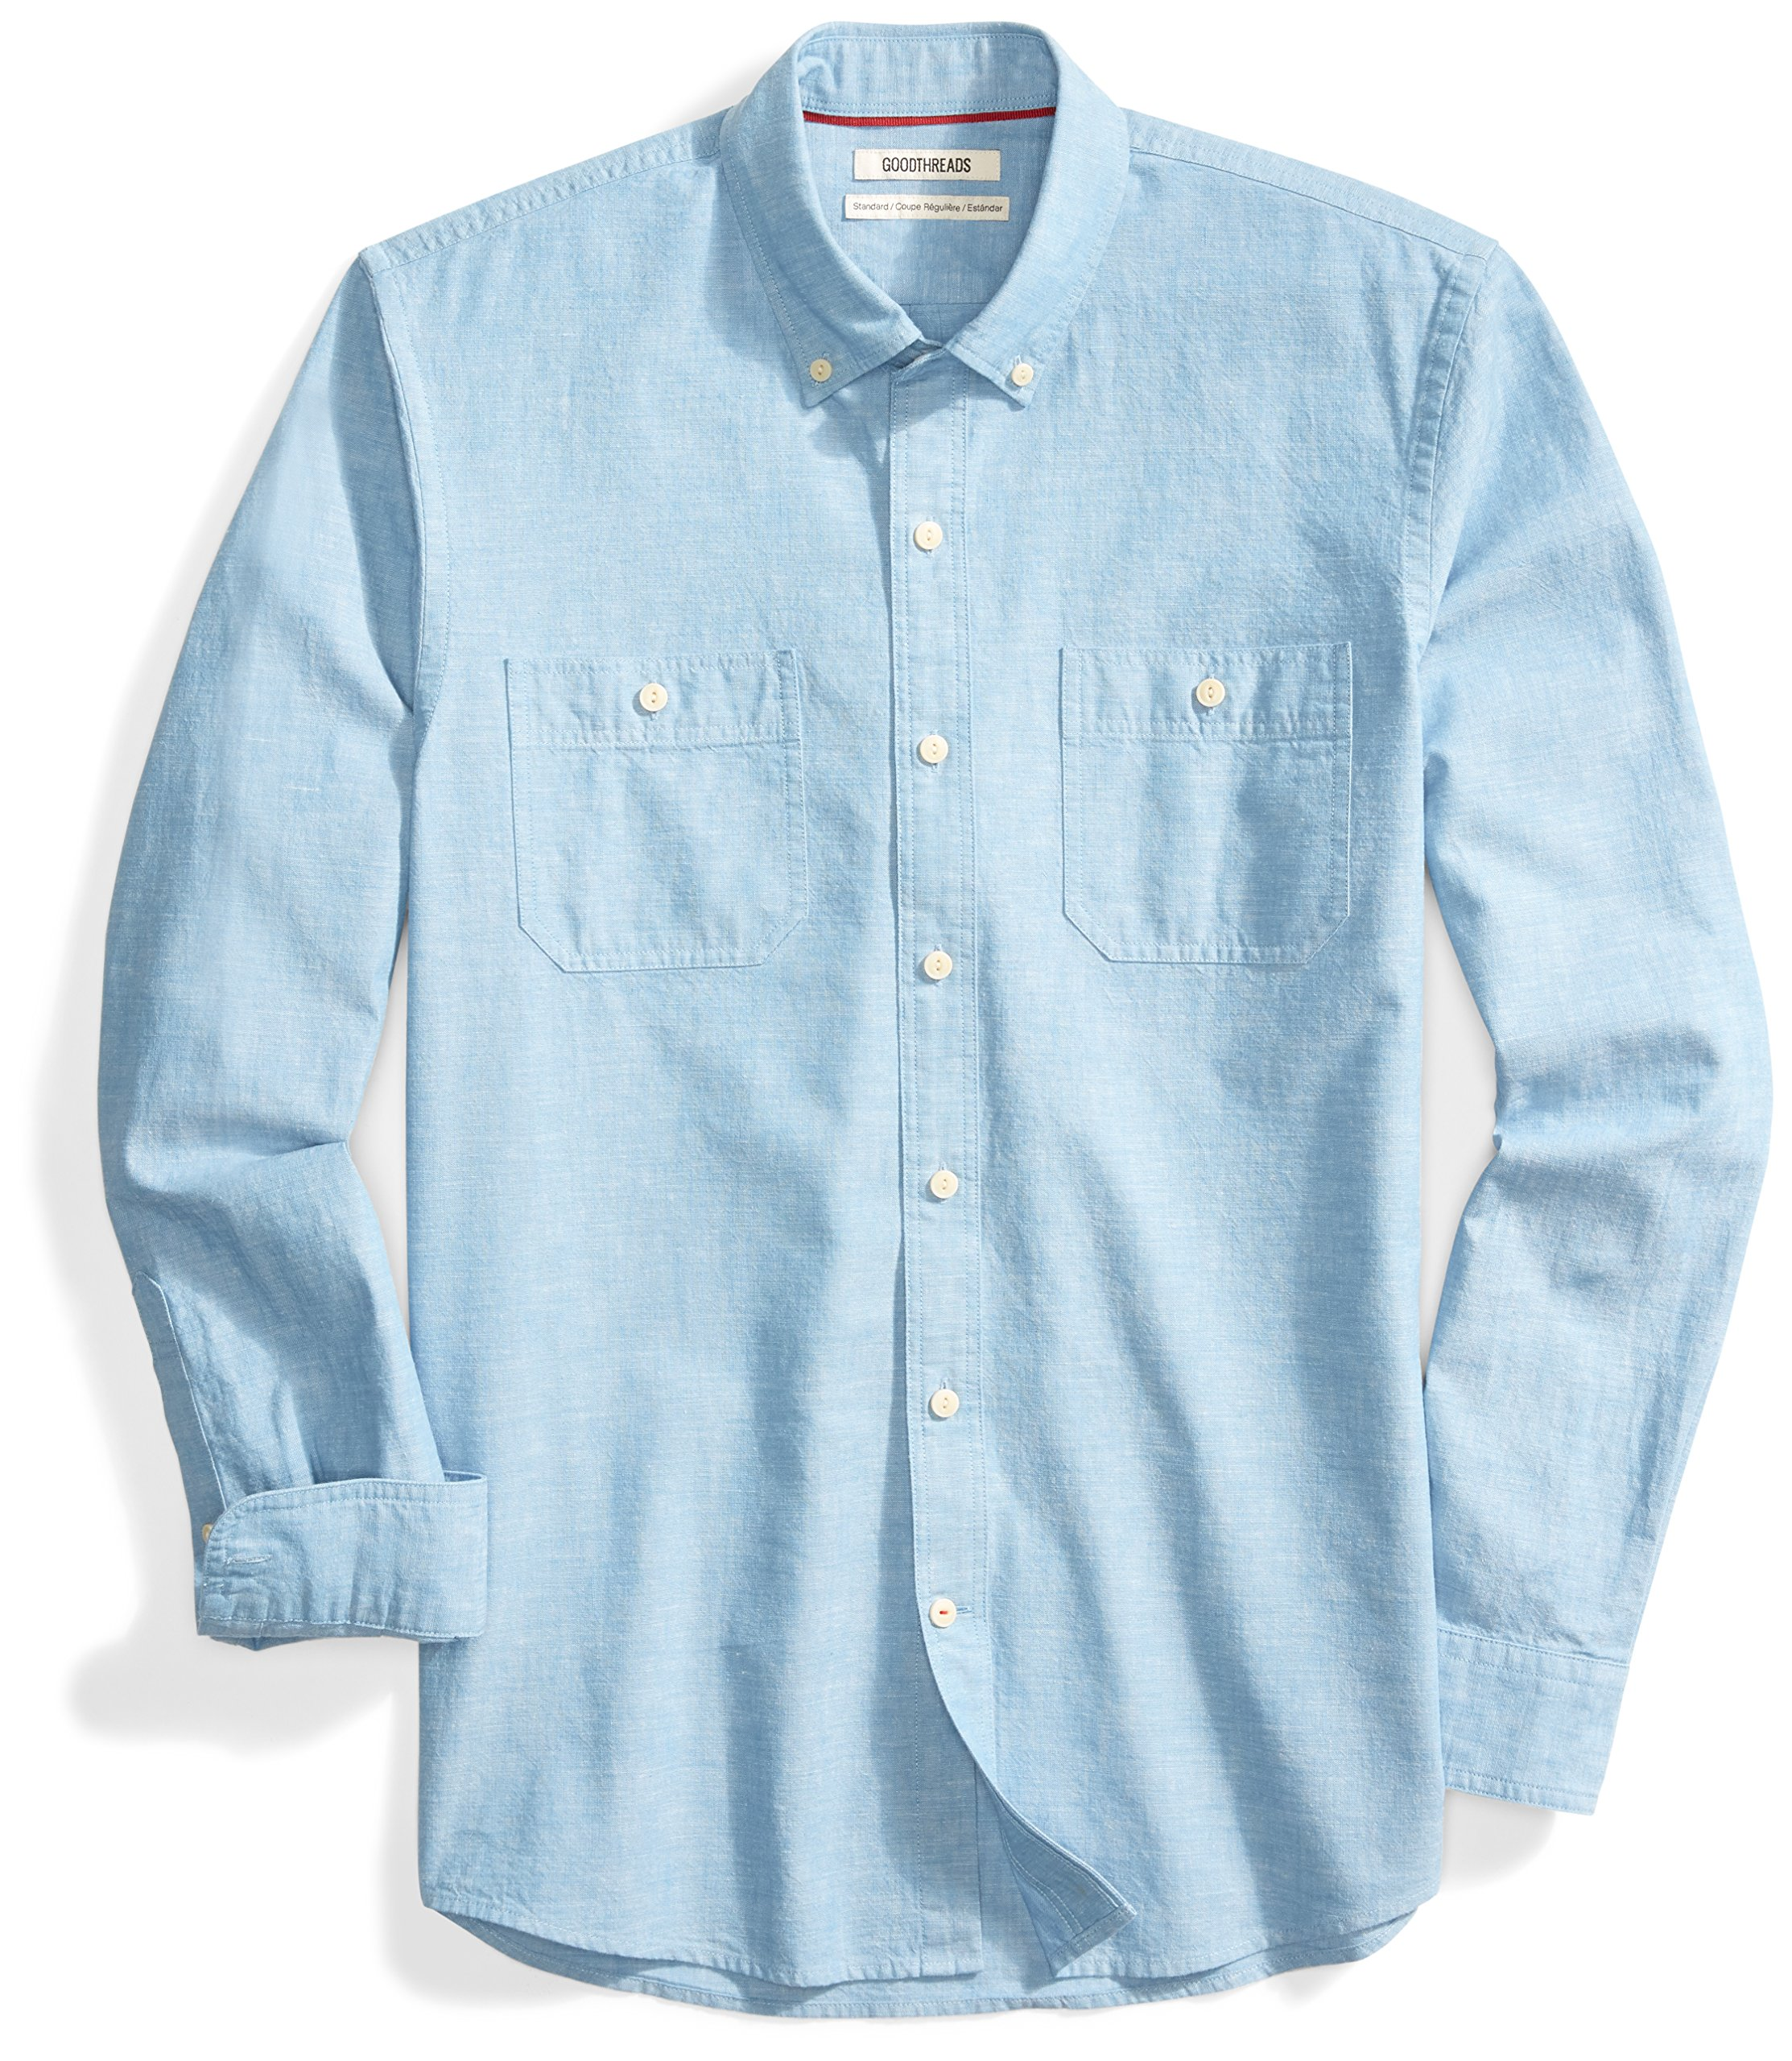 Goodthreads Men's Standard-Fit Long-Sleeve Chambray Shirt, Blue, Large